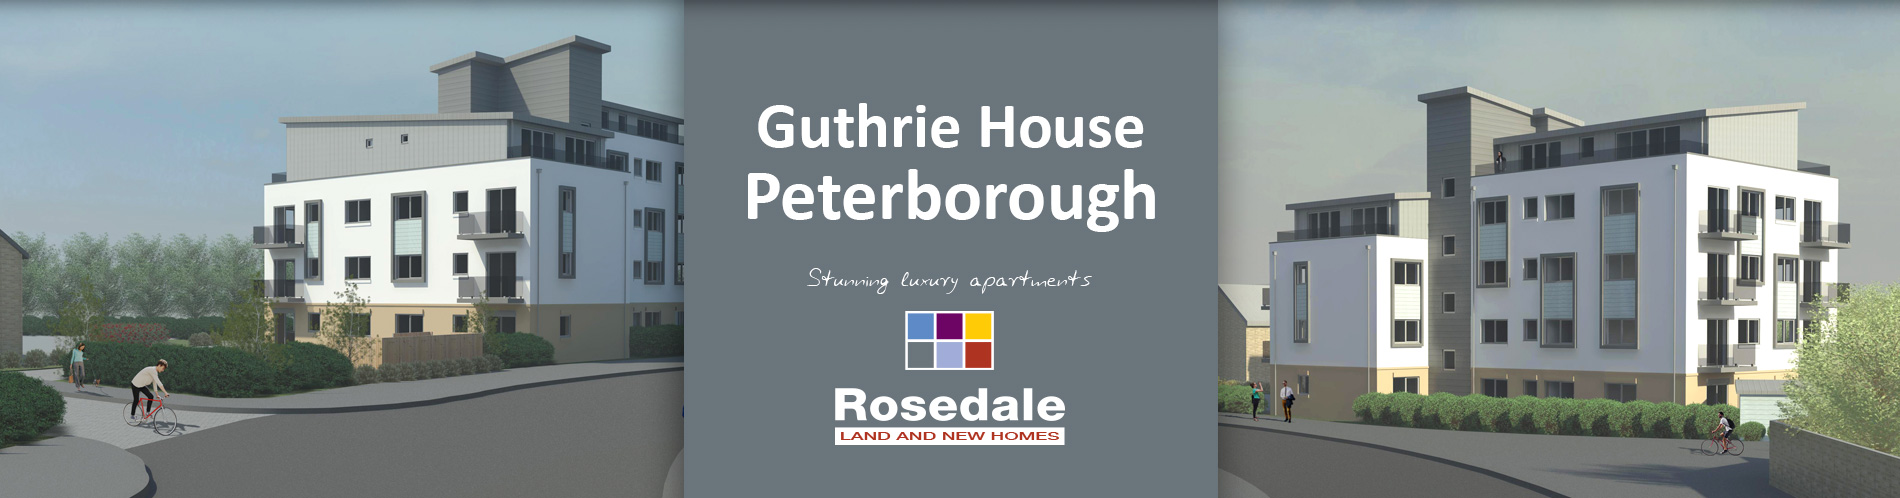 New Apartments Guthrie House Peterborough